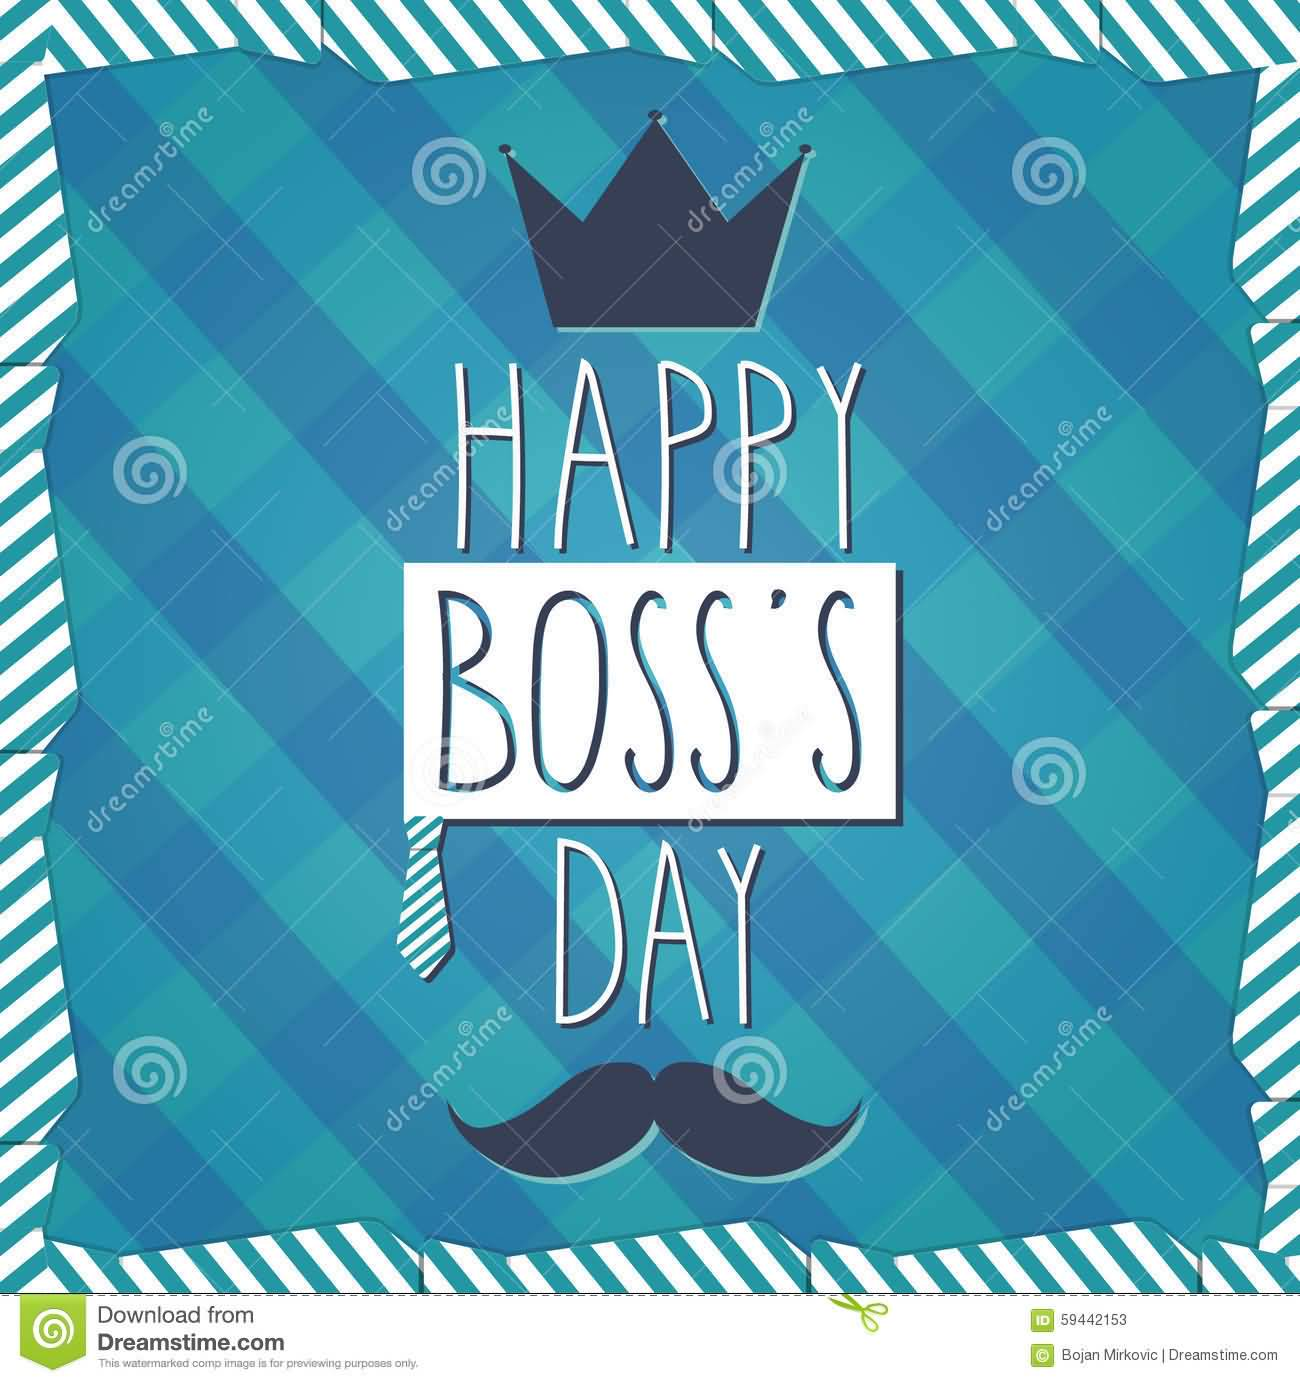 40 Most Beautiful Happy Boss Day 2016 Greetings Pictures And Images.